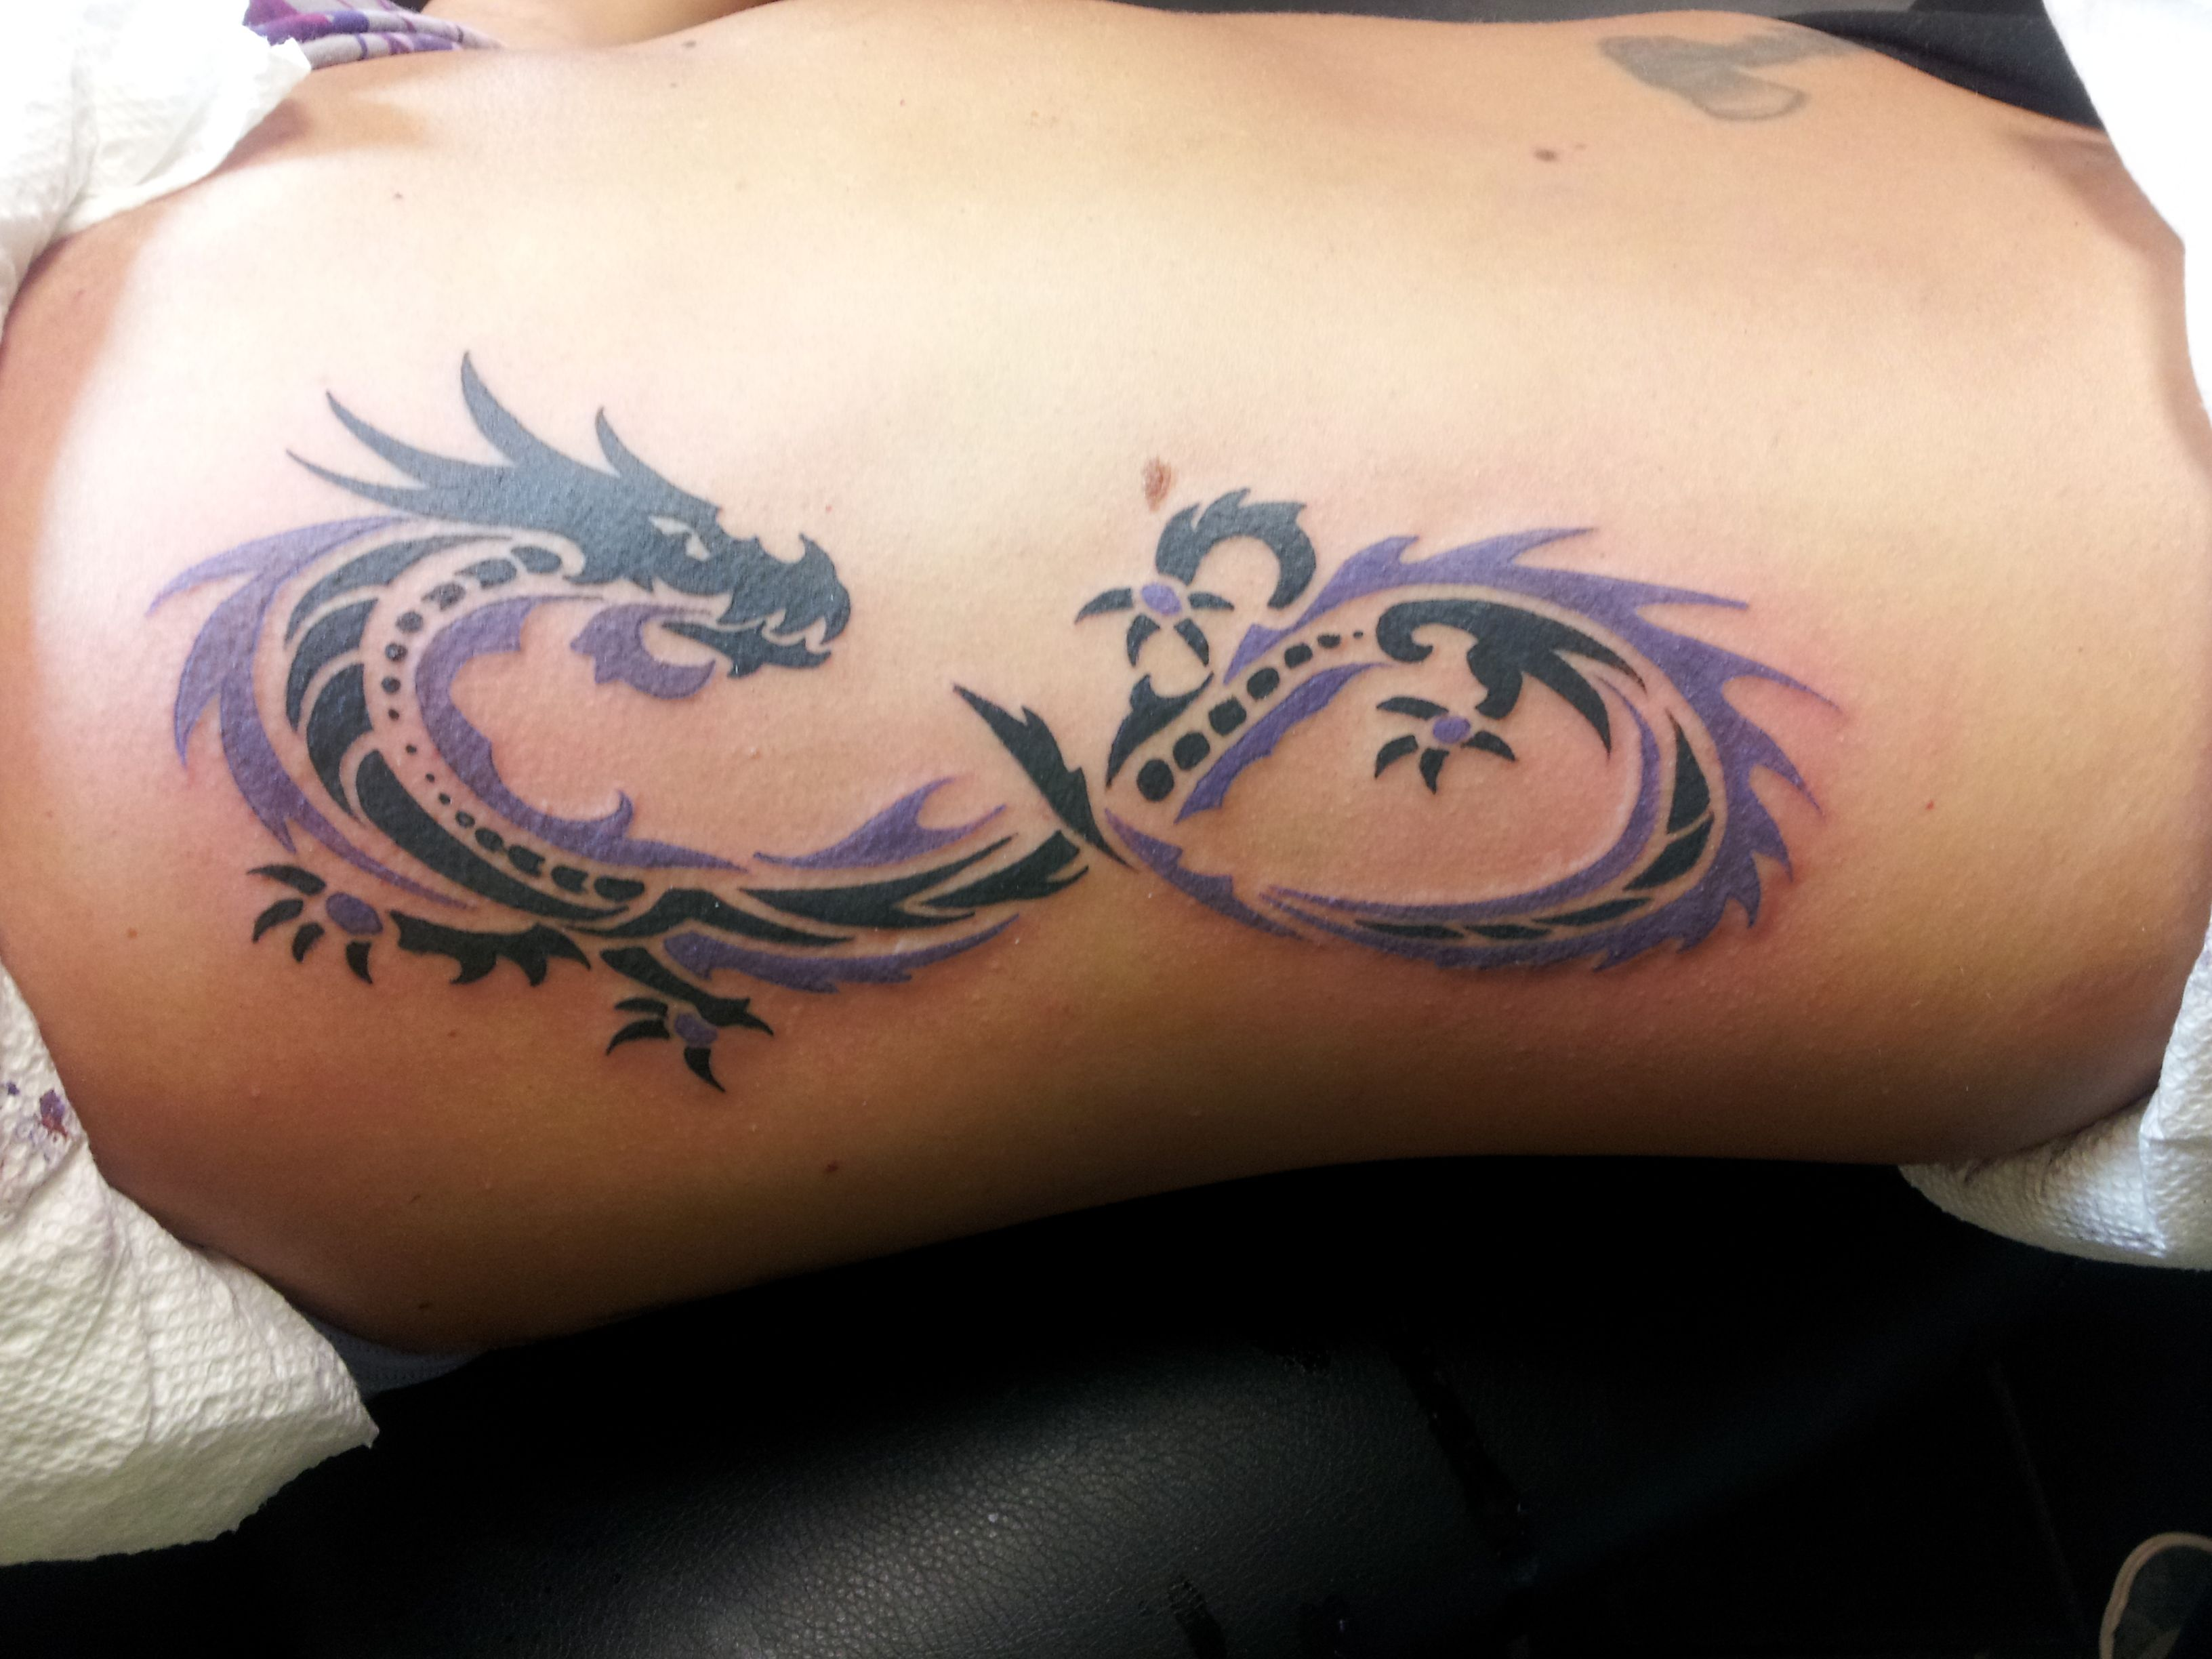 Henna Tattoo Tribal Designs Dragon: Infinity Dragon... When Complete Will Have A Saying With